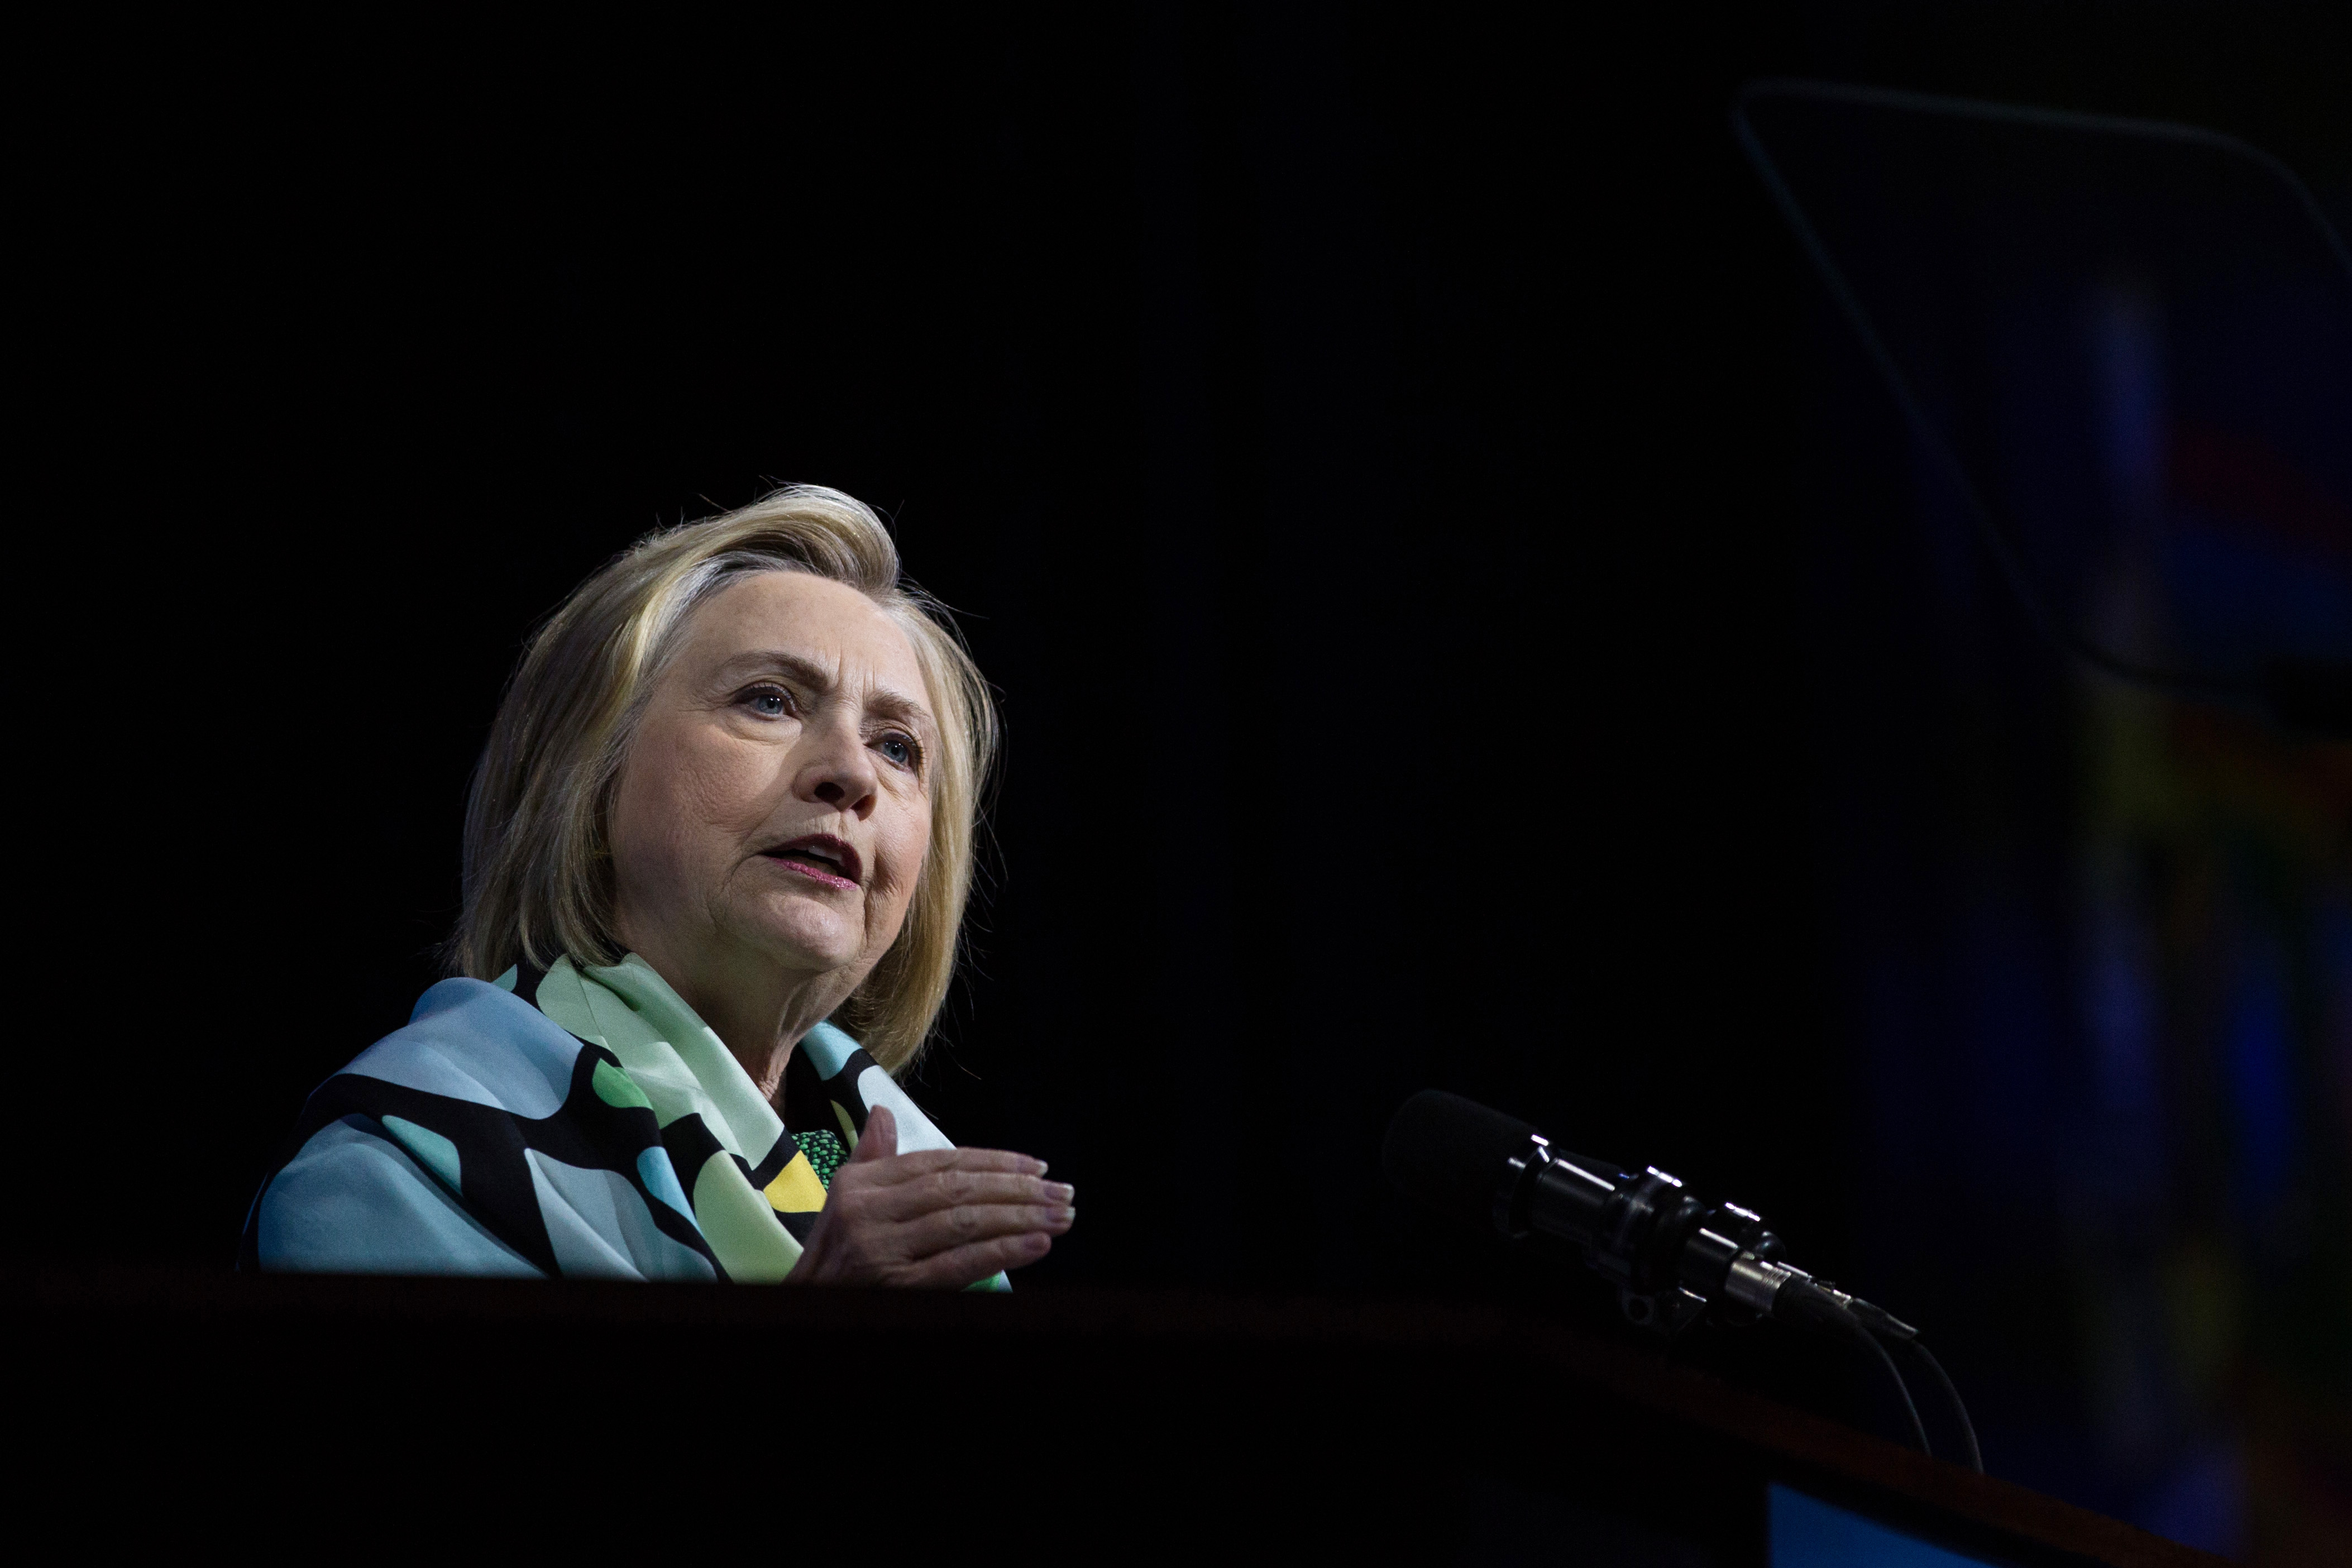 Hillary Clinton delivers a speech during the New York Democratic convention at Hofstra University on May 23, 2018 in Hempstead, New York. Clinton attended the event to support Governor Andrew Cuomo's bid for a third term.